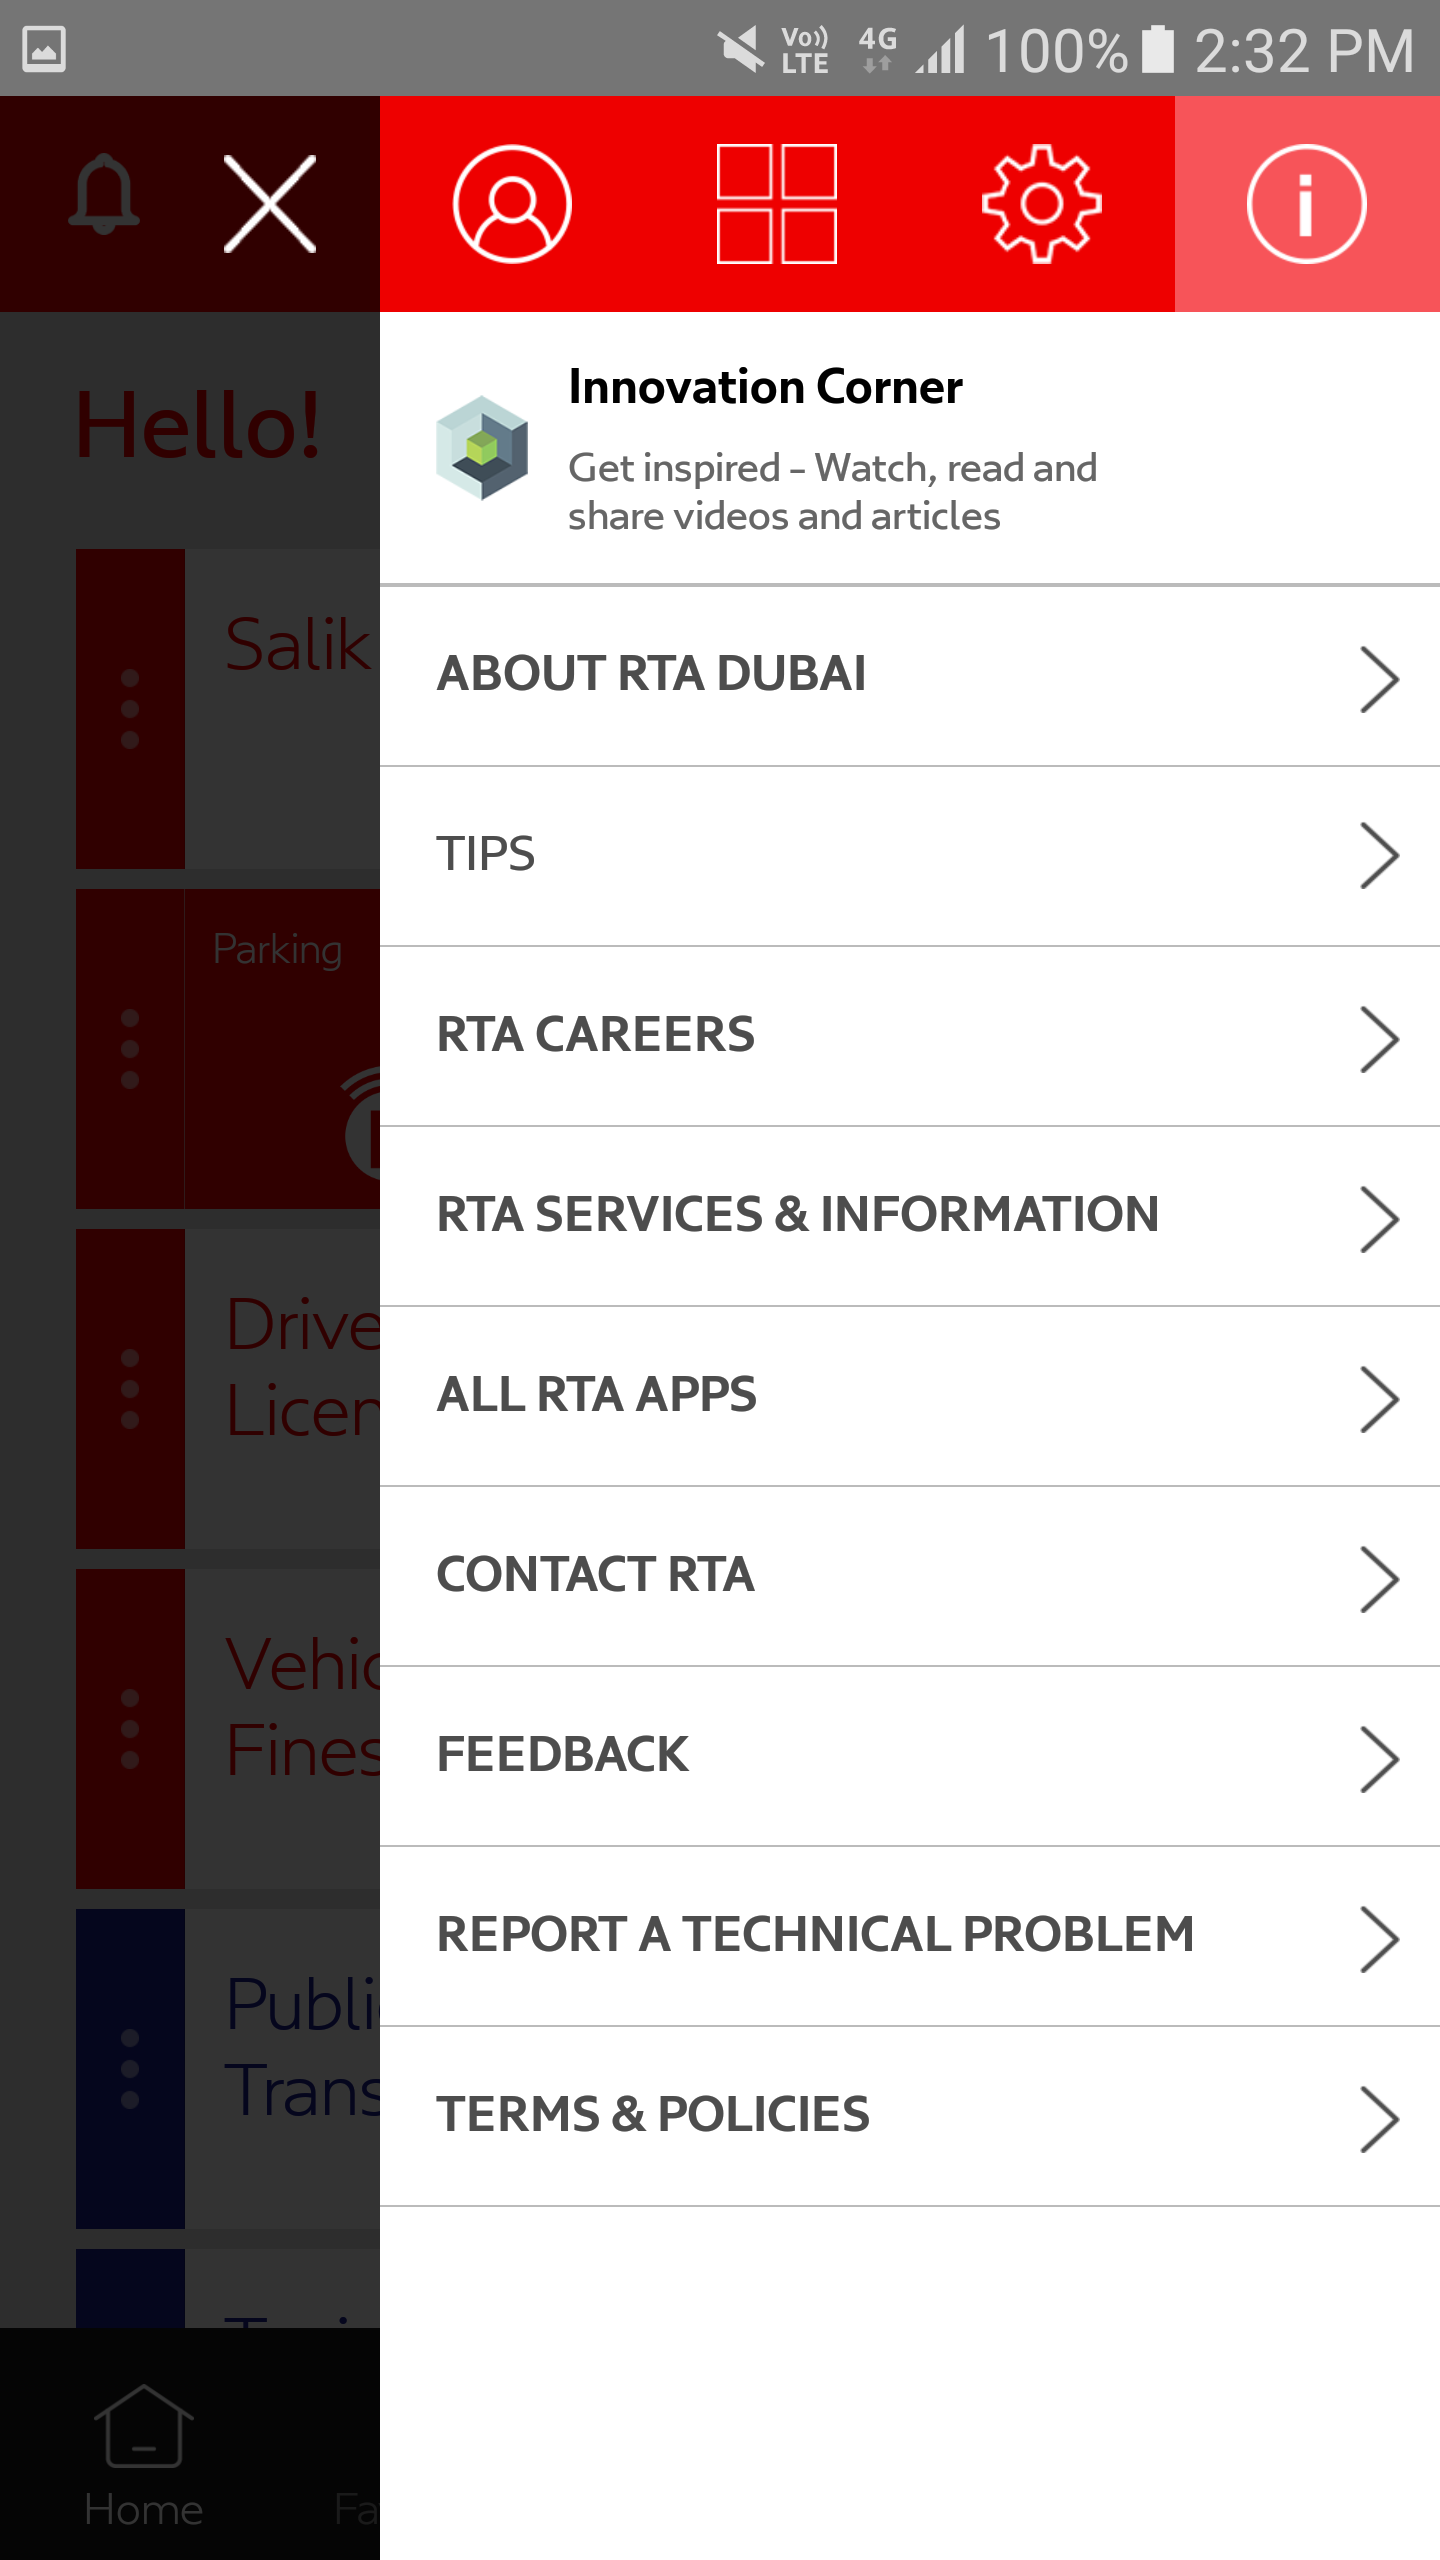 RTA Dubai App innovation corner screen